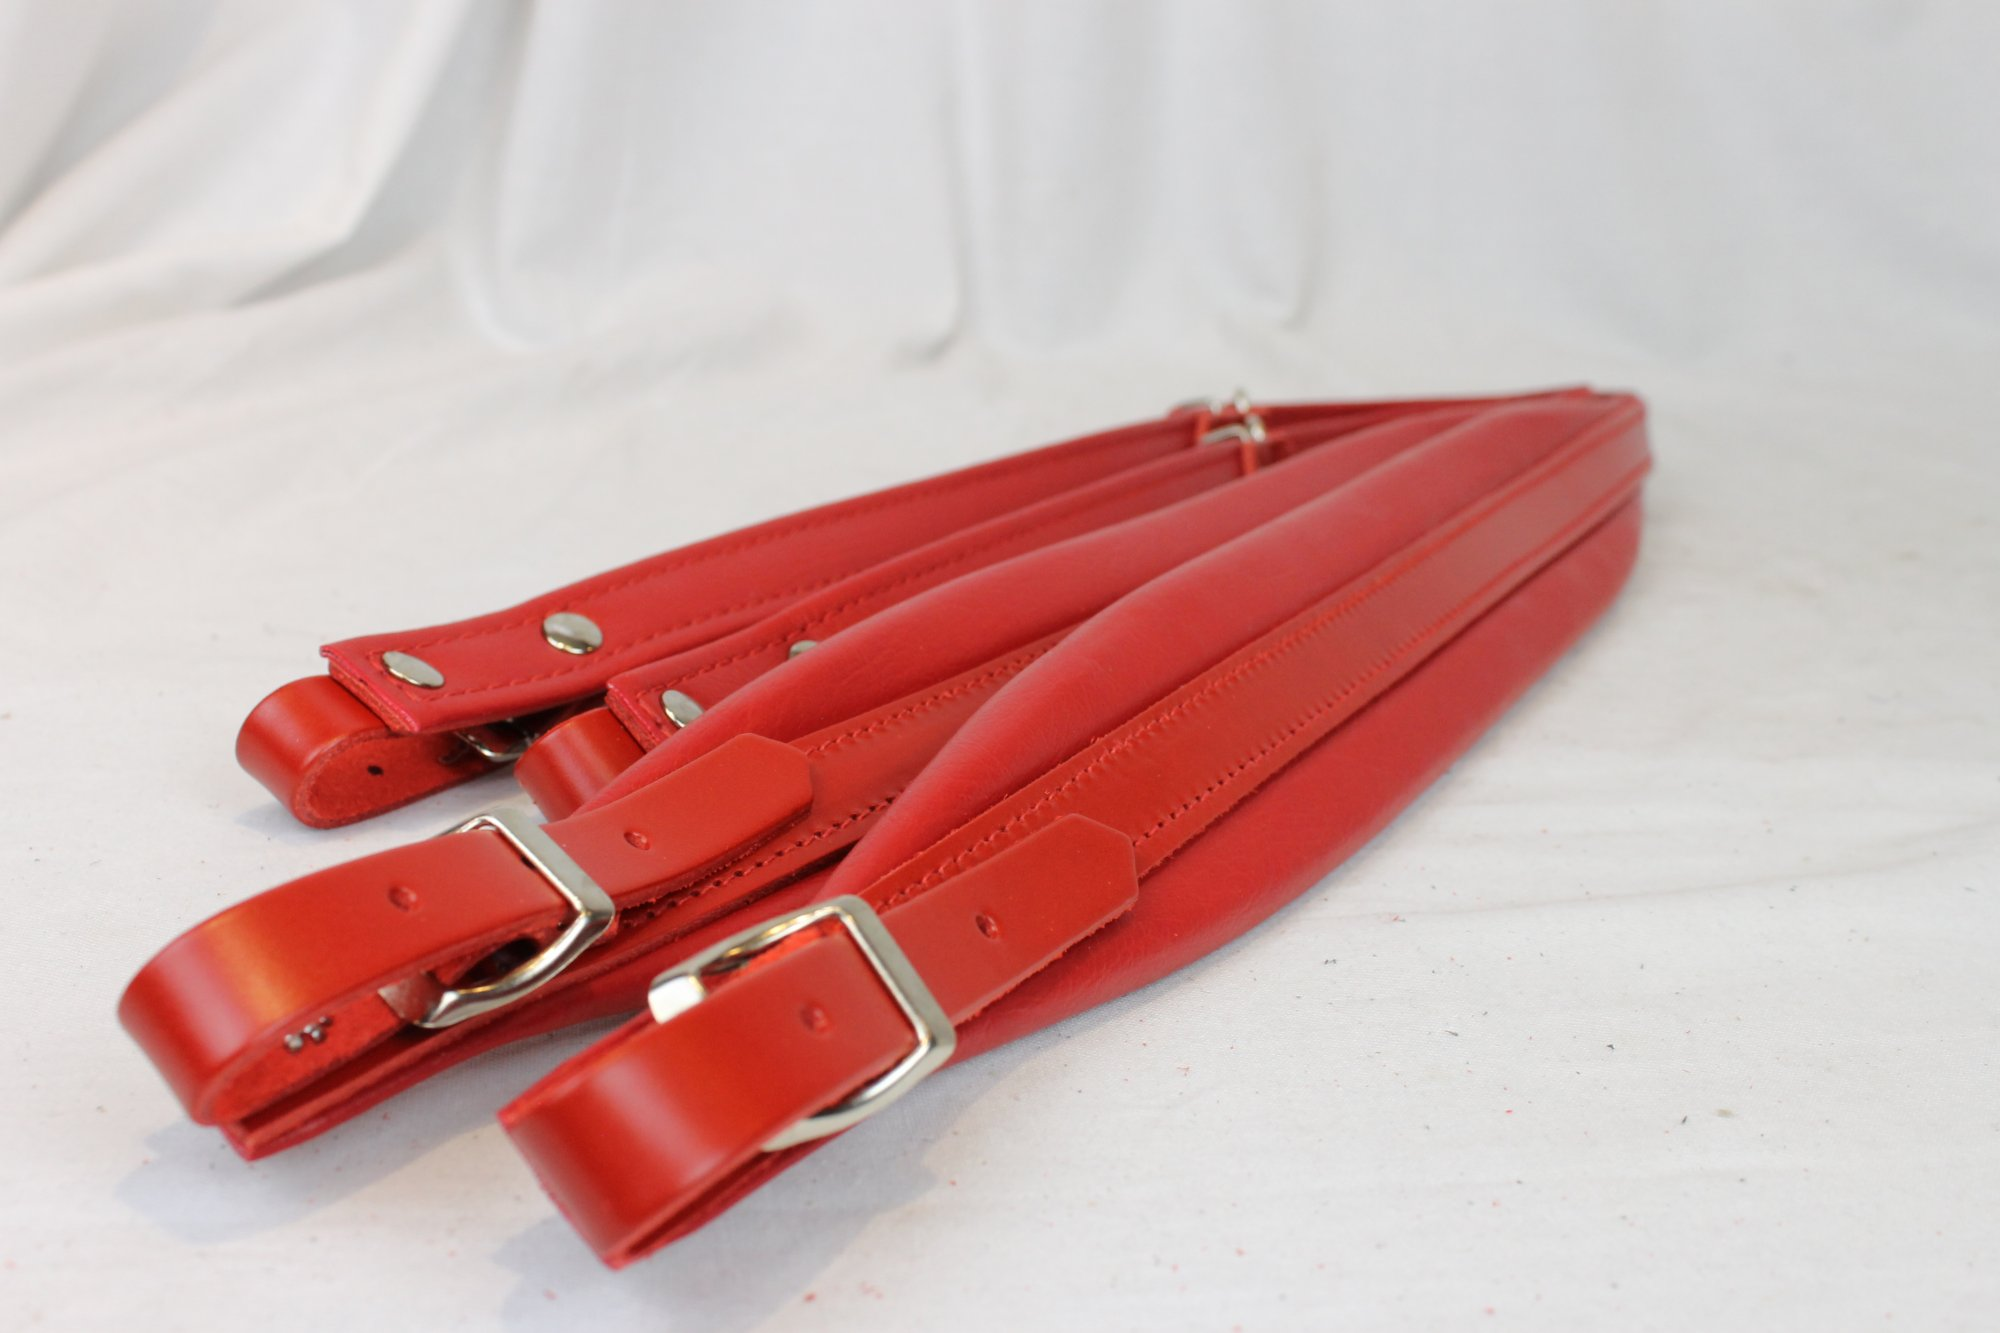 New Red Leather Fuselli Accordion Shoulder Straps Width (6cm / 2.4in) Length (85~105cm / 33.5~41.3in)